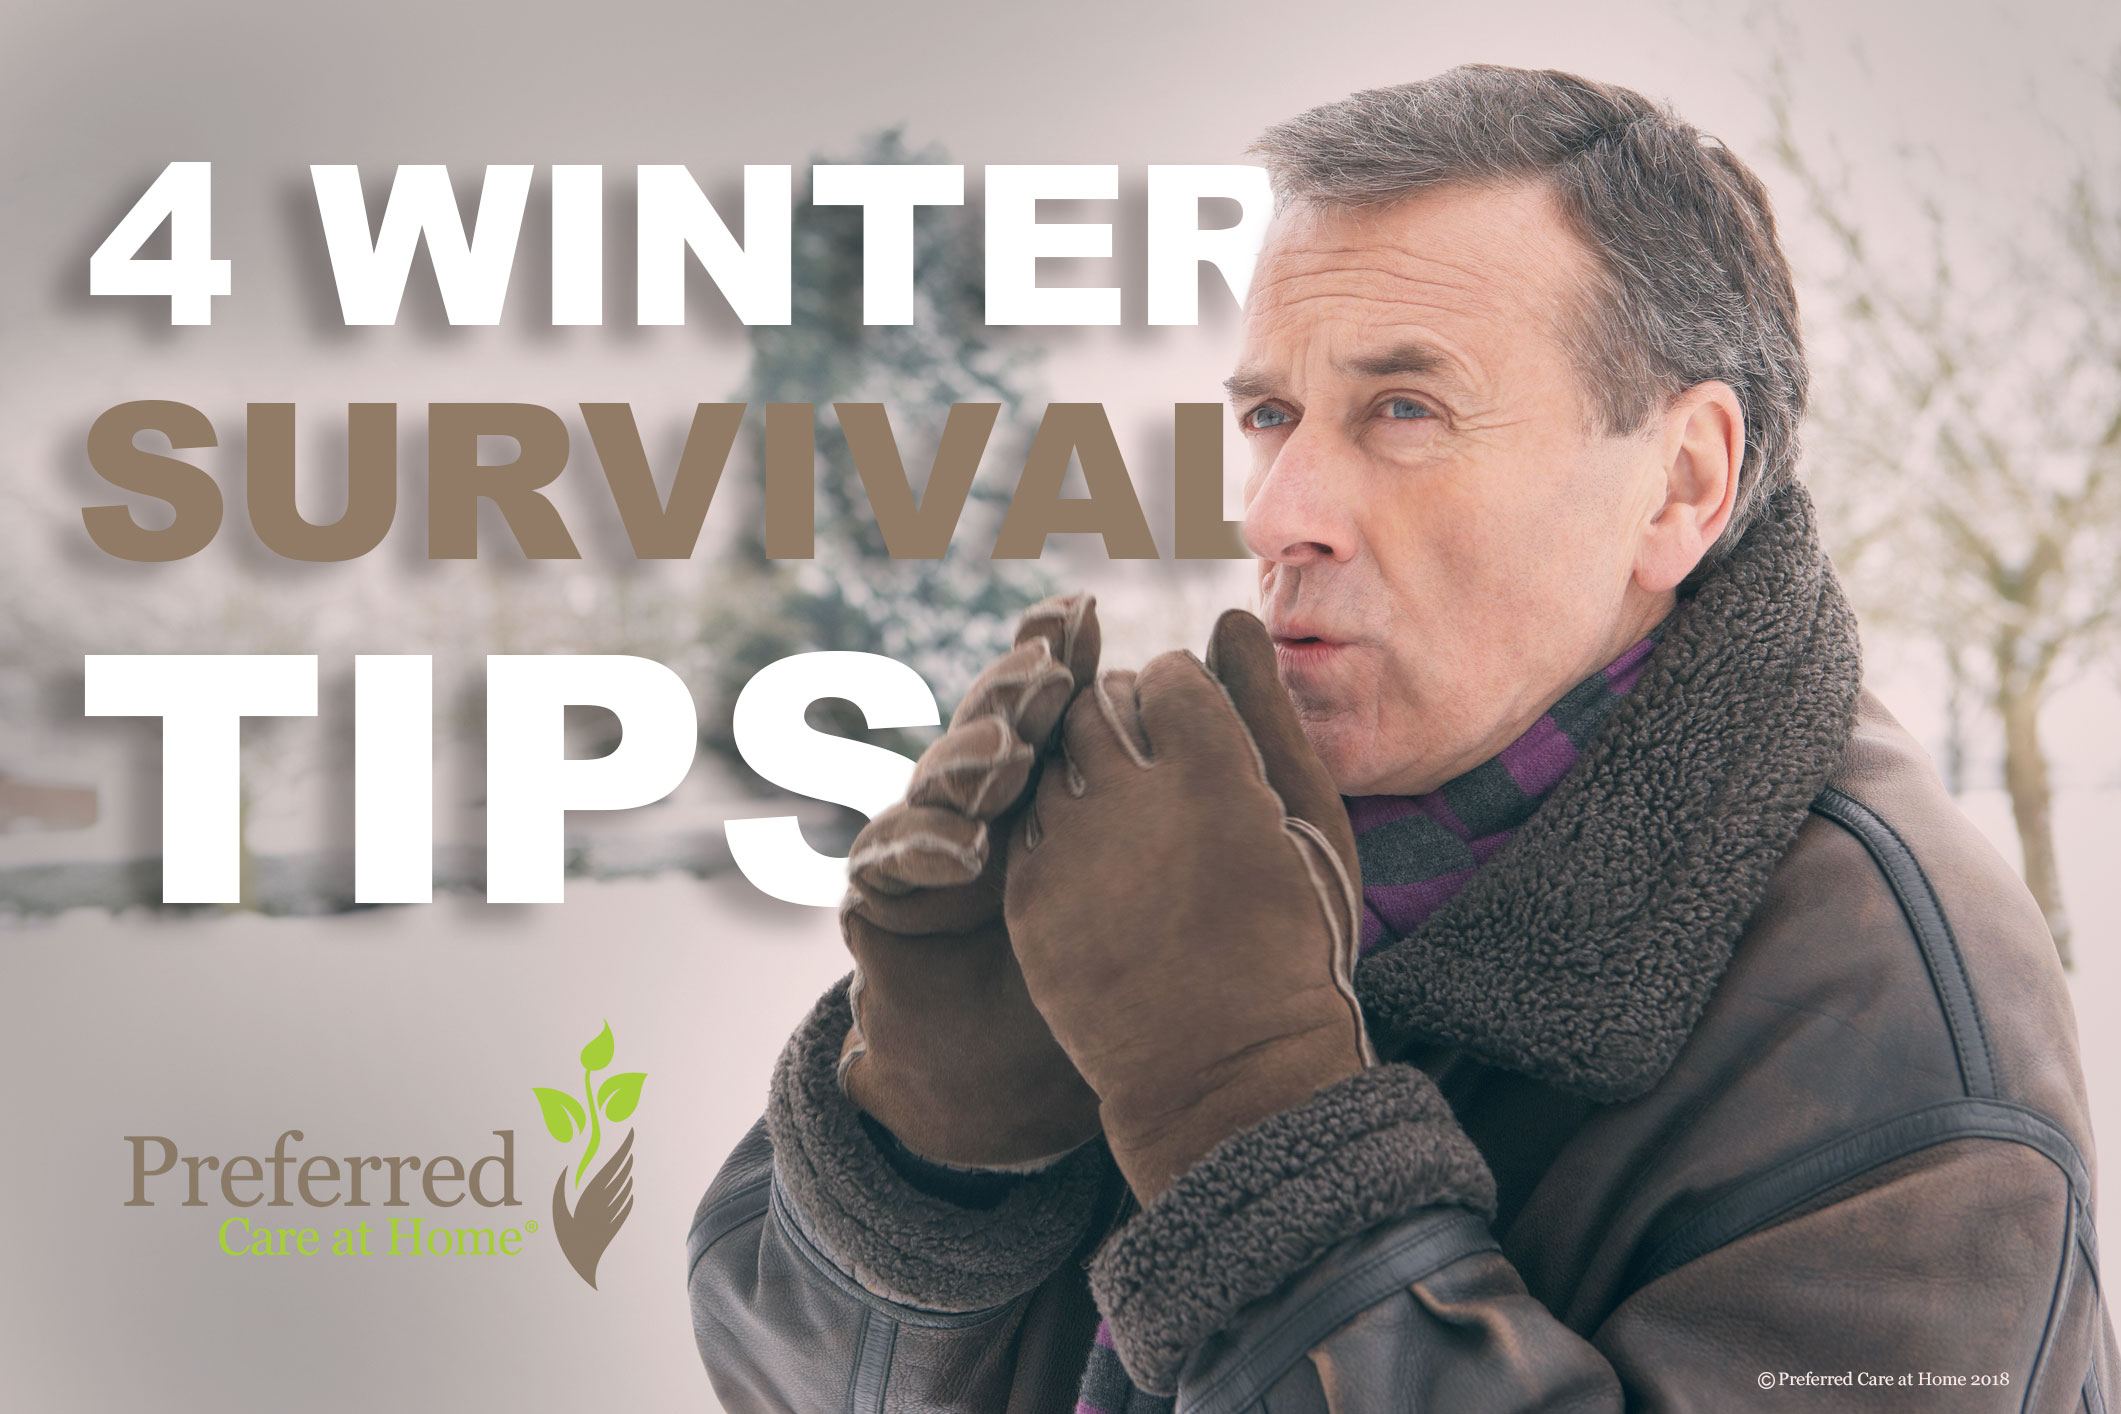 4 Winter Survival Tips from a Novice